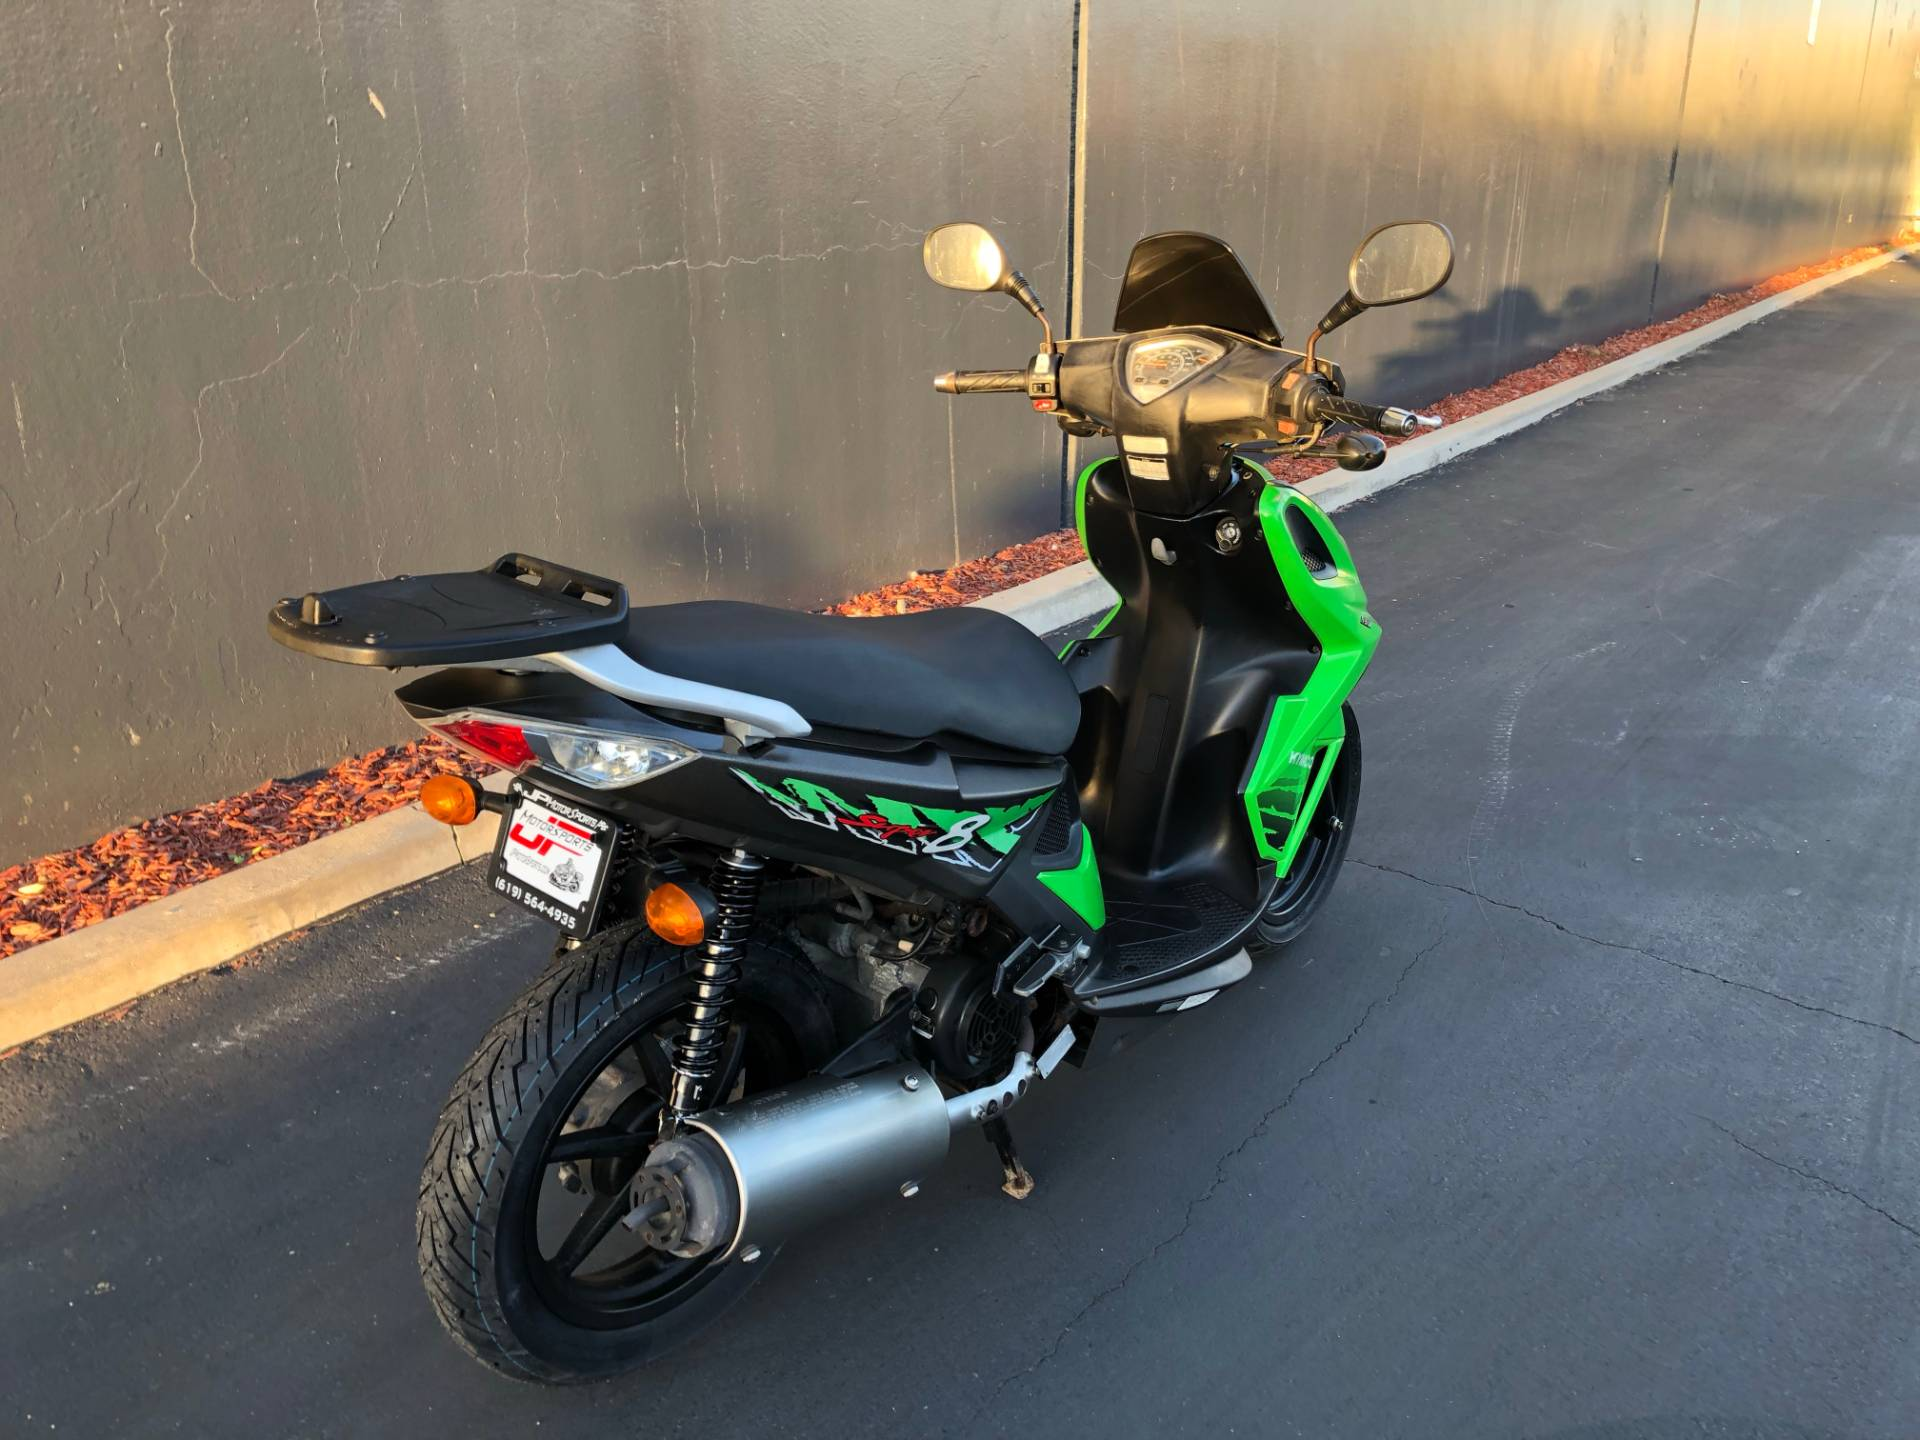 2012 Kymco Super 8 150 in Chula Vista, California - Photo 3